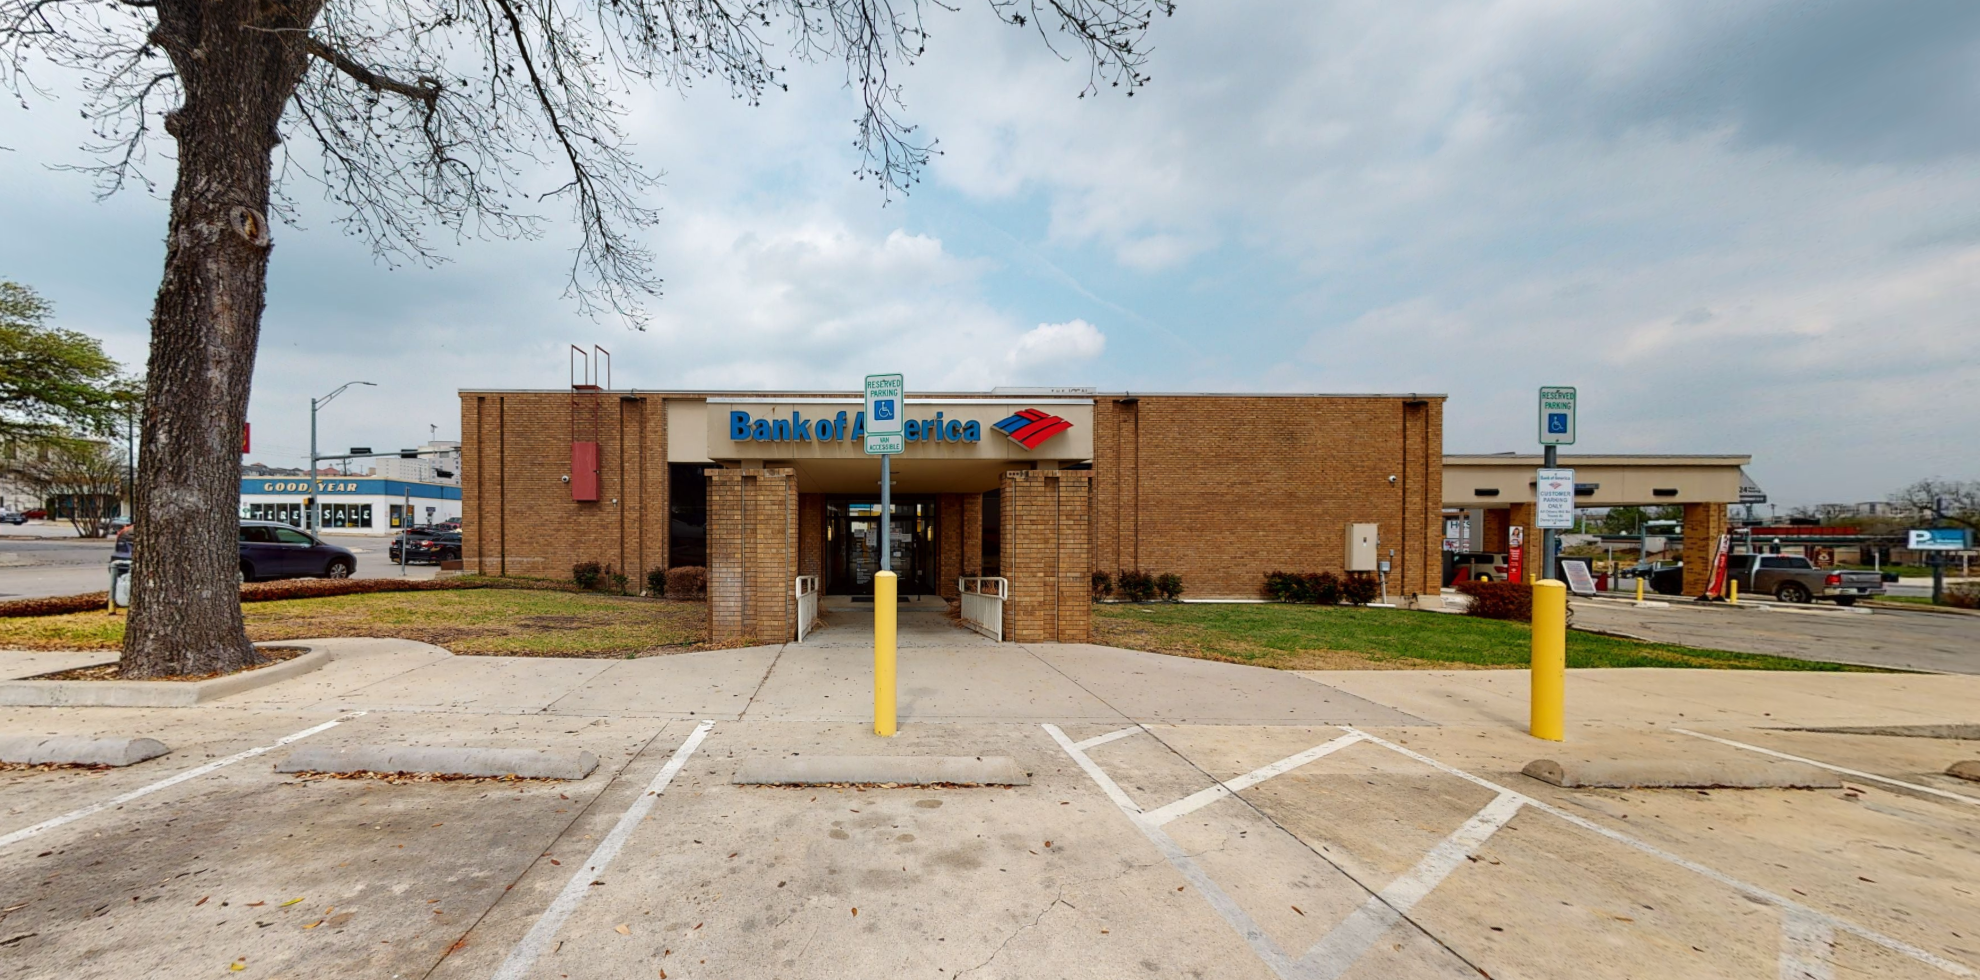 Bank of America financial center with drive-thru ATM and teller   308 E Hopkins St, San Marcos, TX 78666